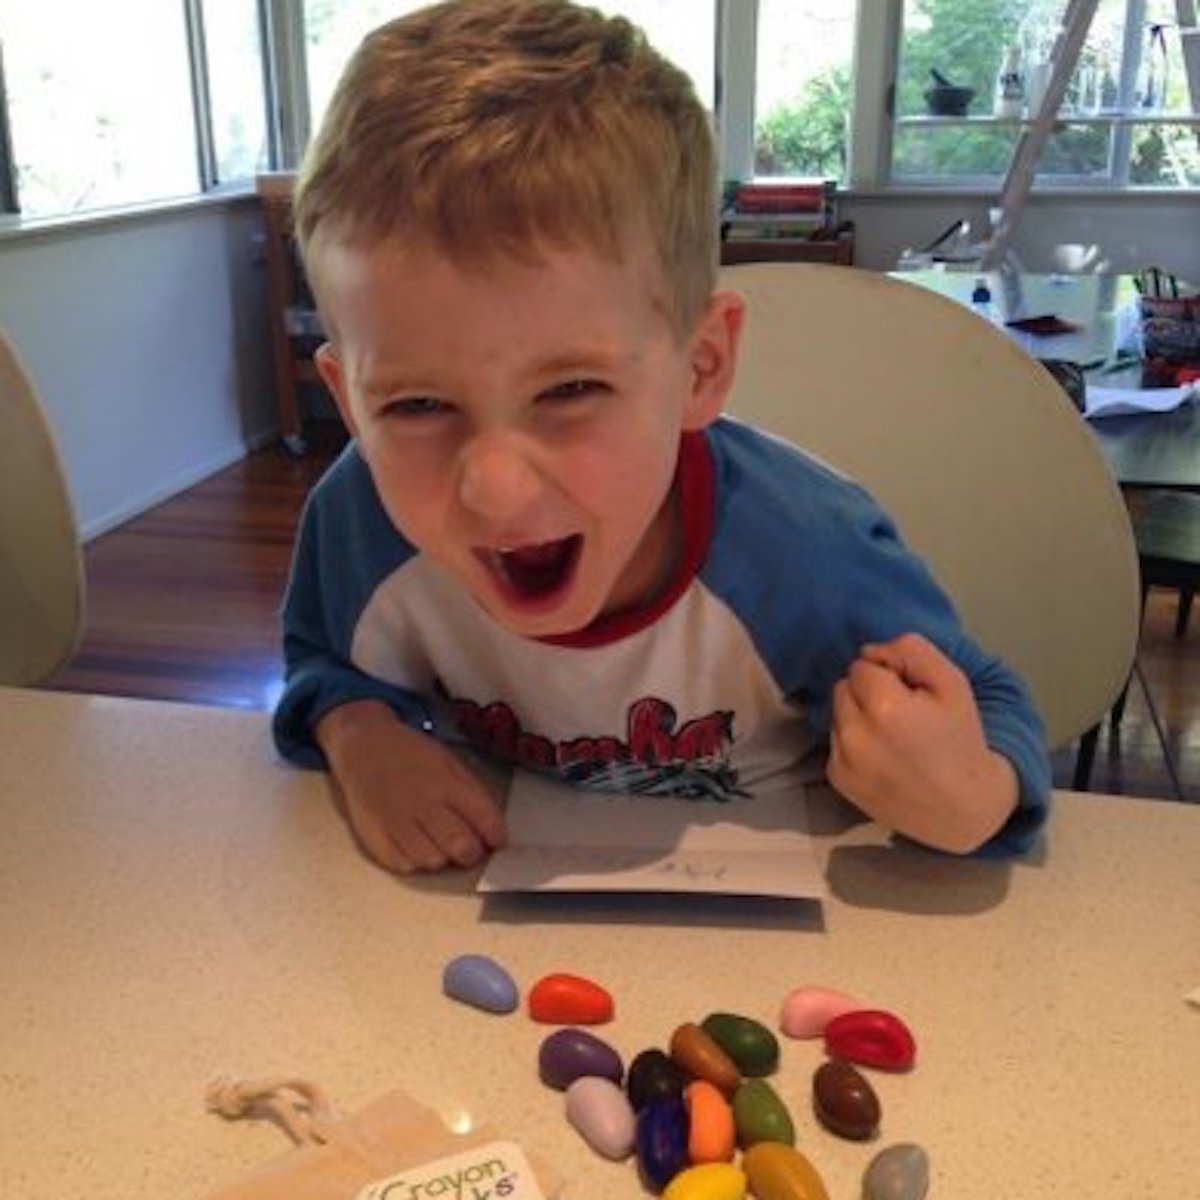 Child coloring with Crayon Rocks at a kitchen table